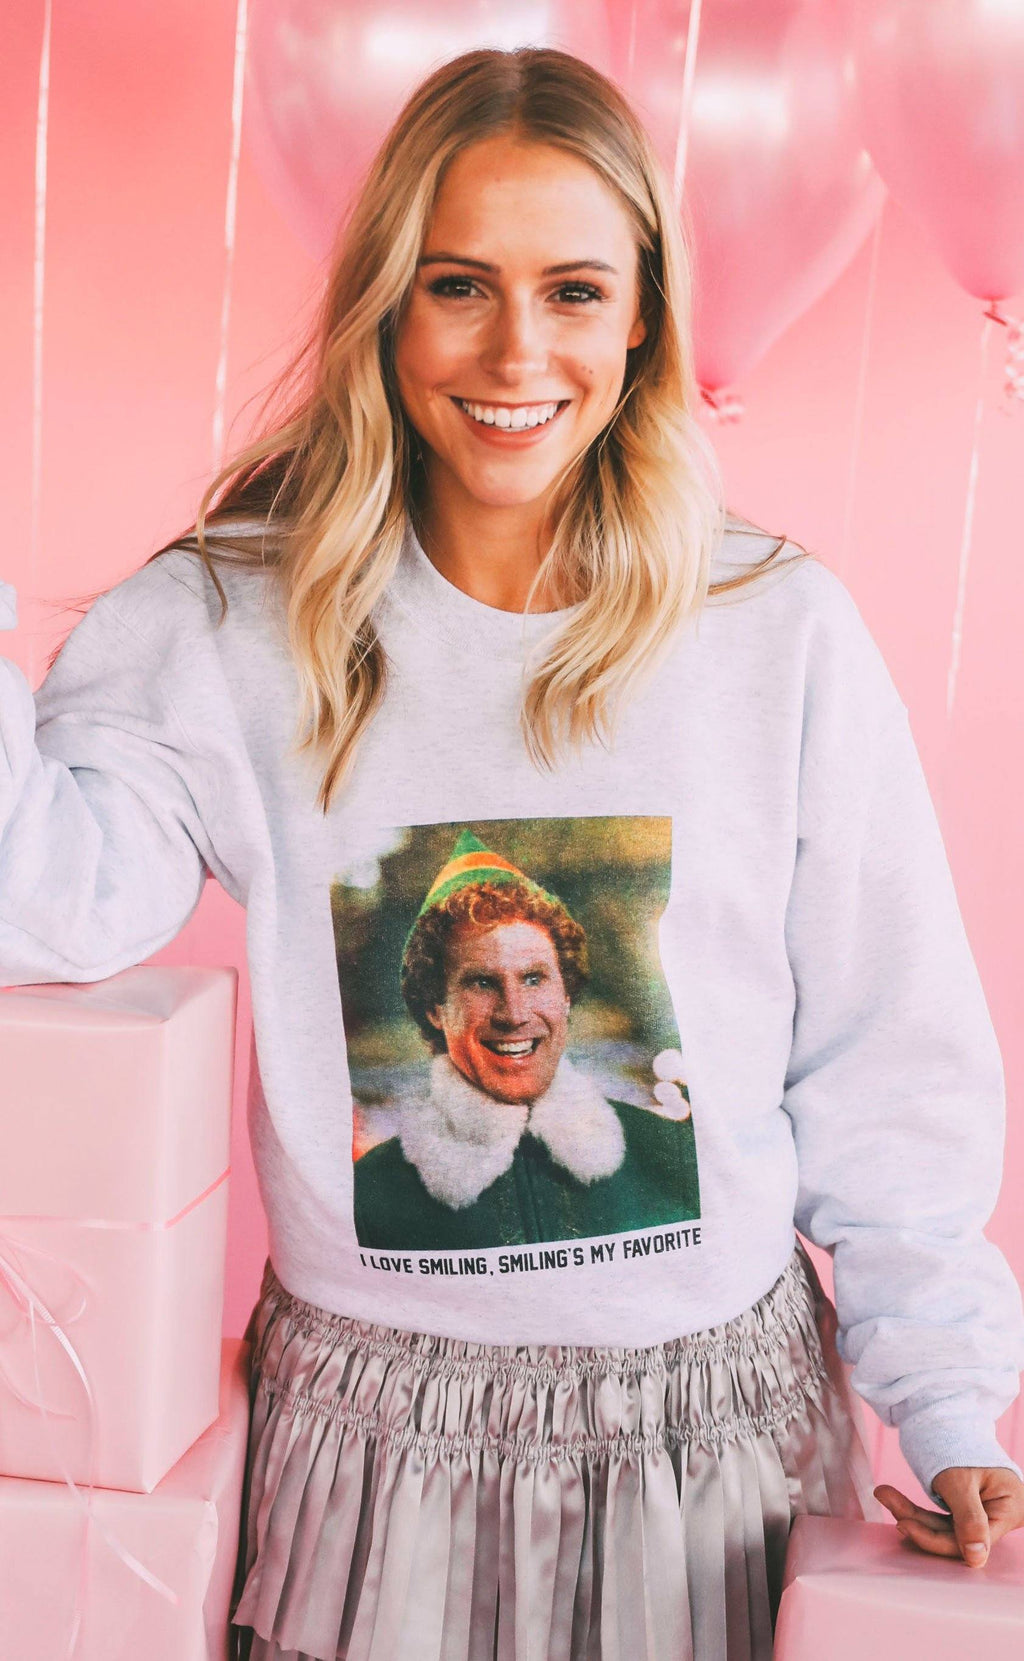 I Love Smiling Sweatshirt By Friday + Saturday - Caroline Hill